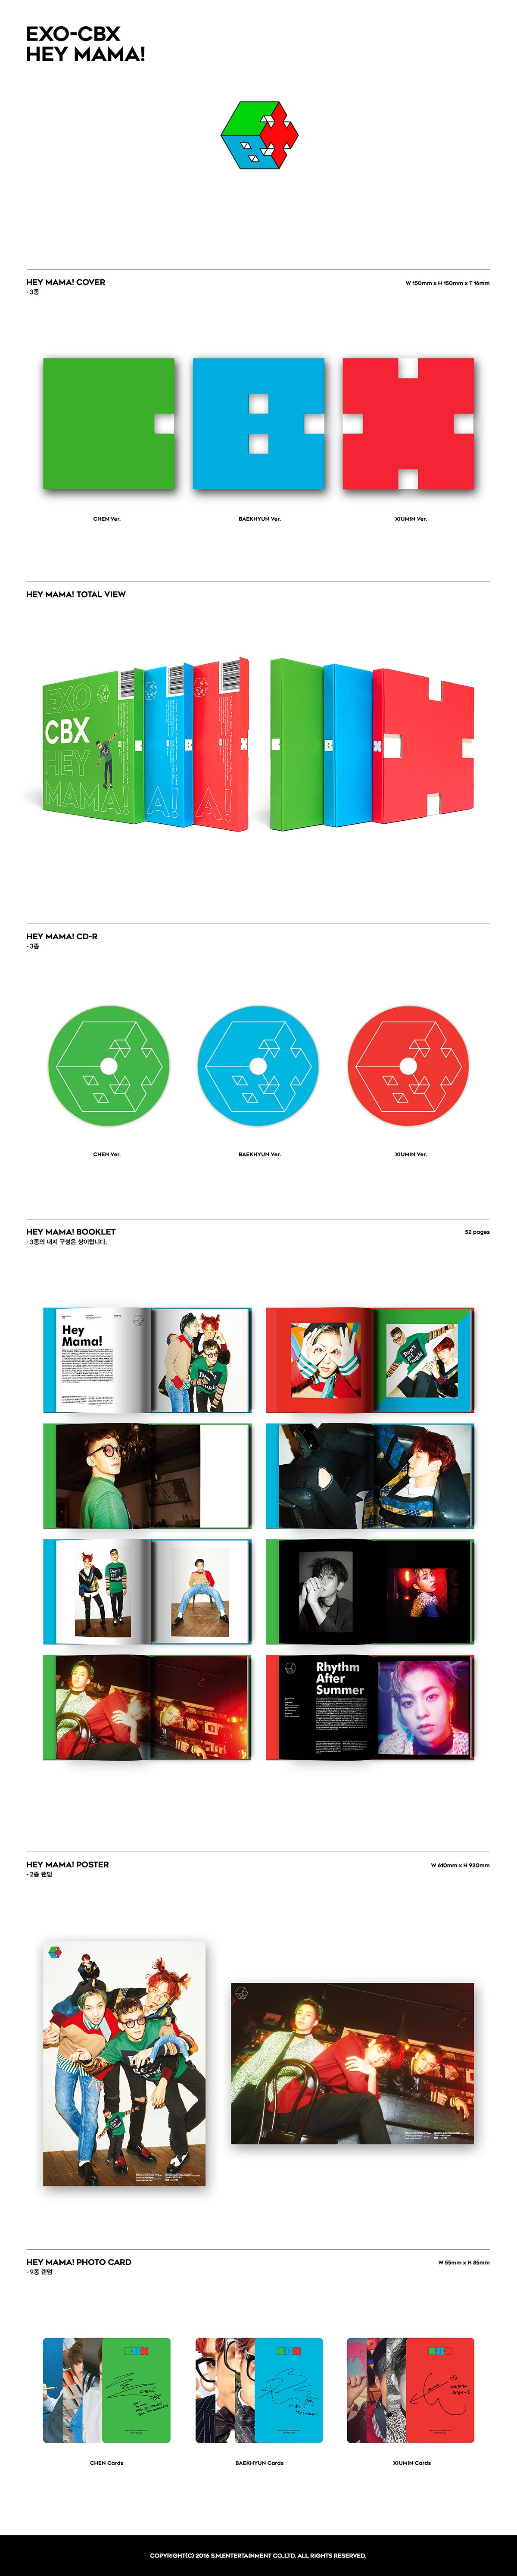 EXO-CBX - 1st Mini Album HEY MAMA Infographic